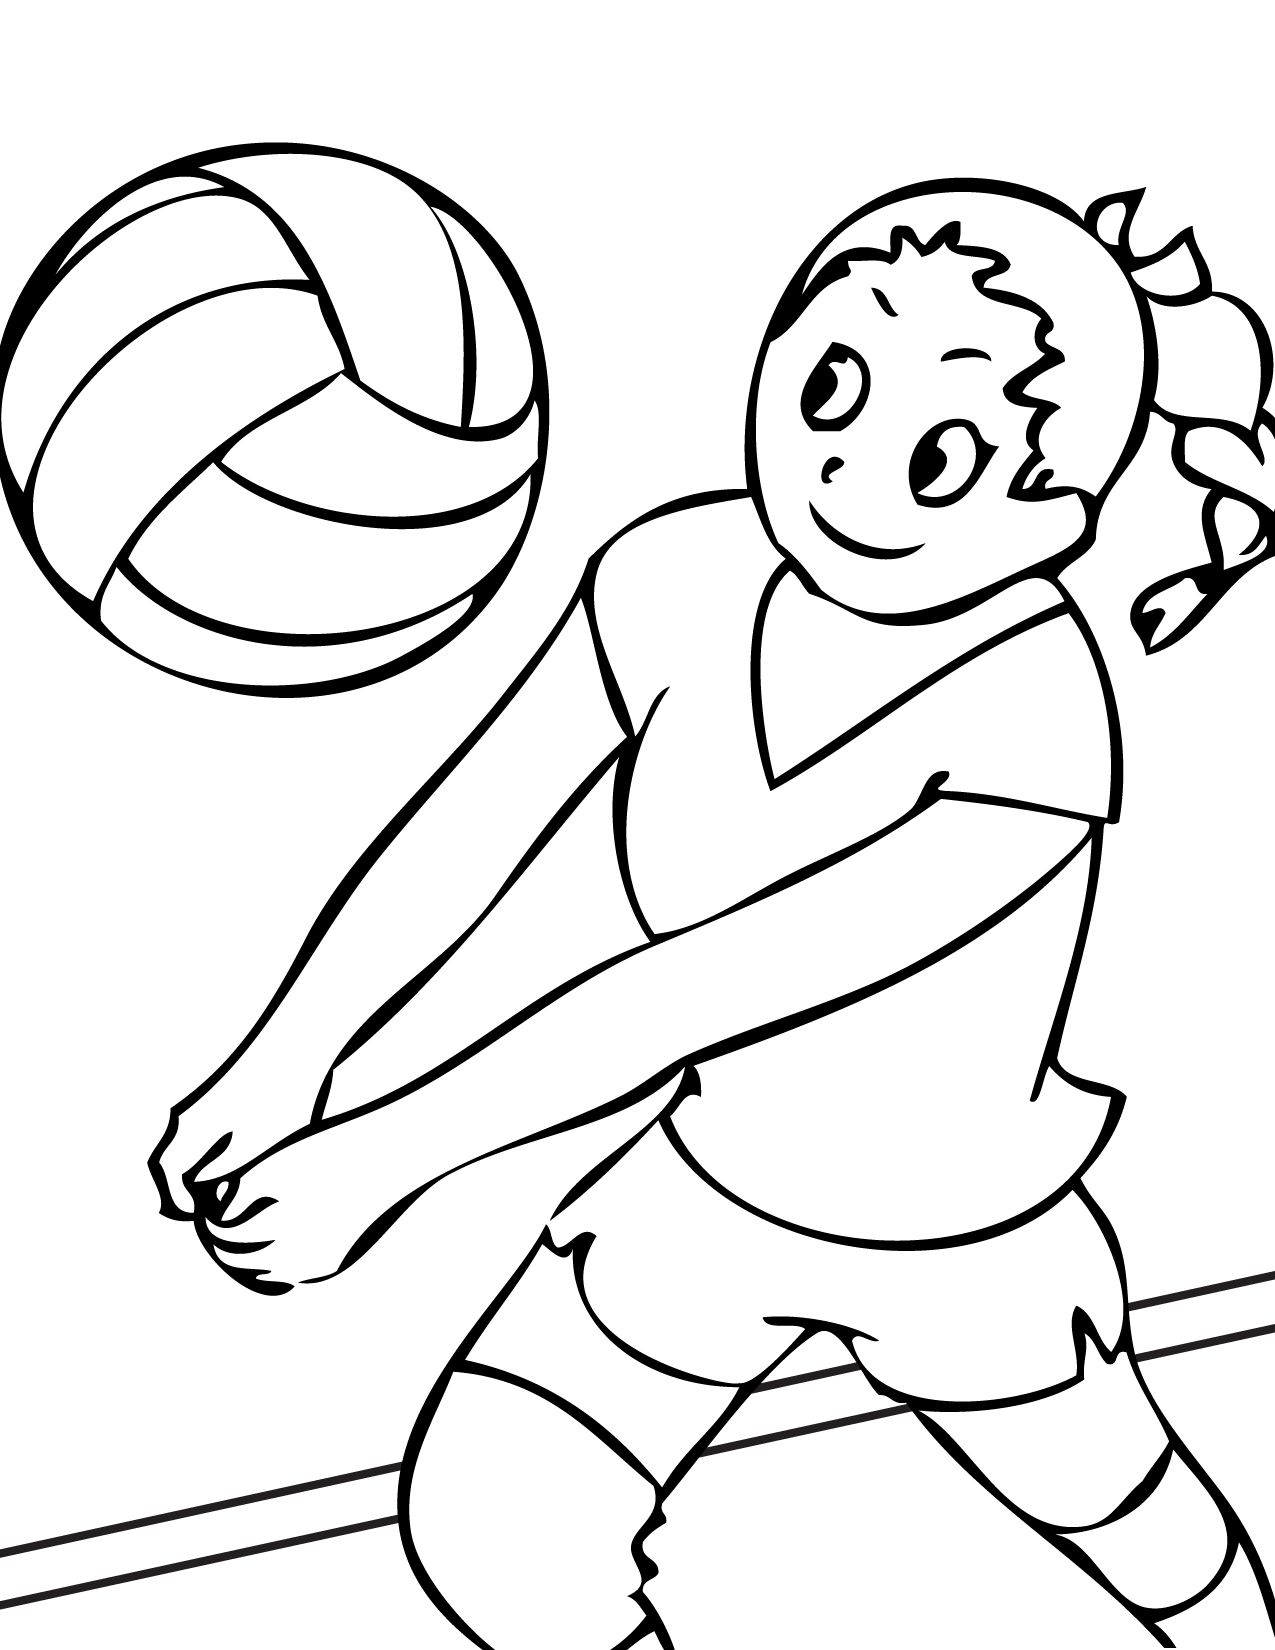 Free Printable Volleyball Coloring Pages For Kids Sports Coloring Pages Coloring Pages Coloring Pages For Kids